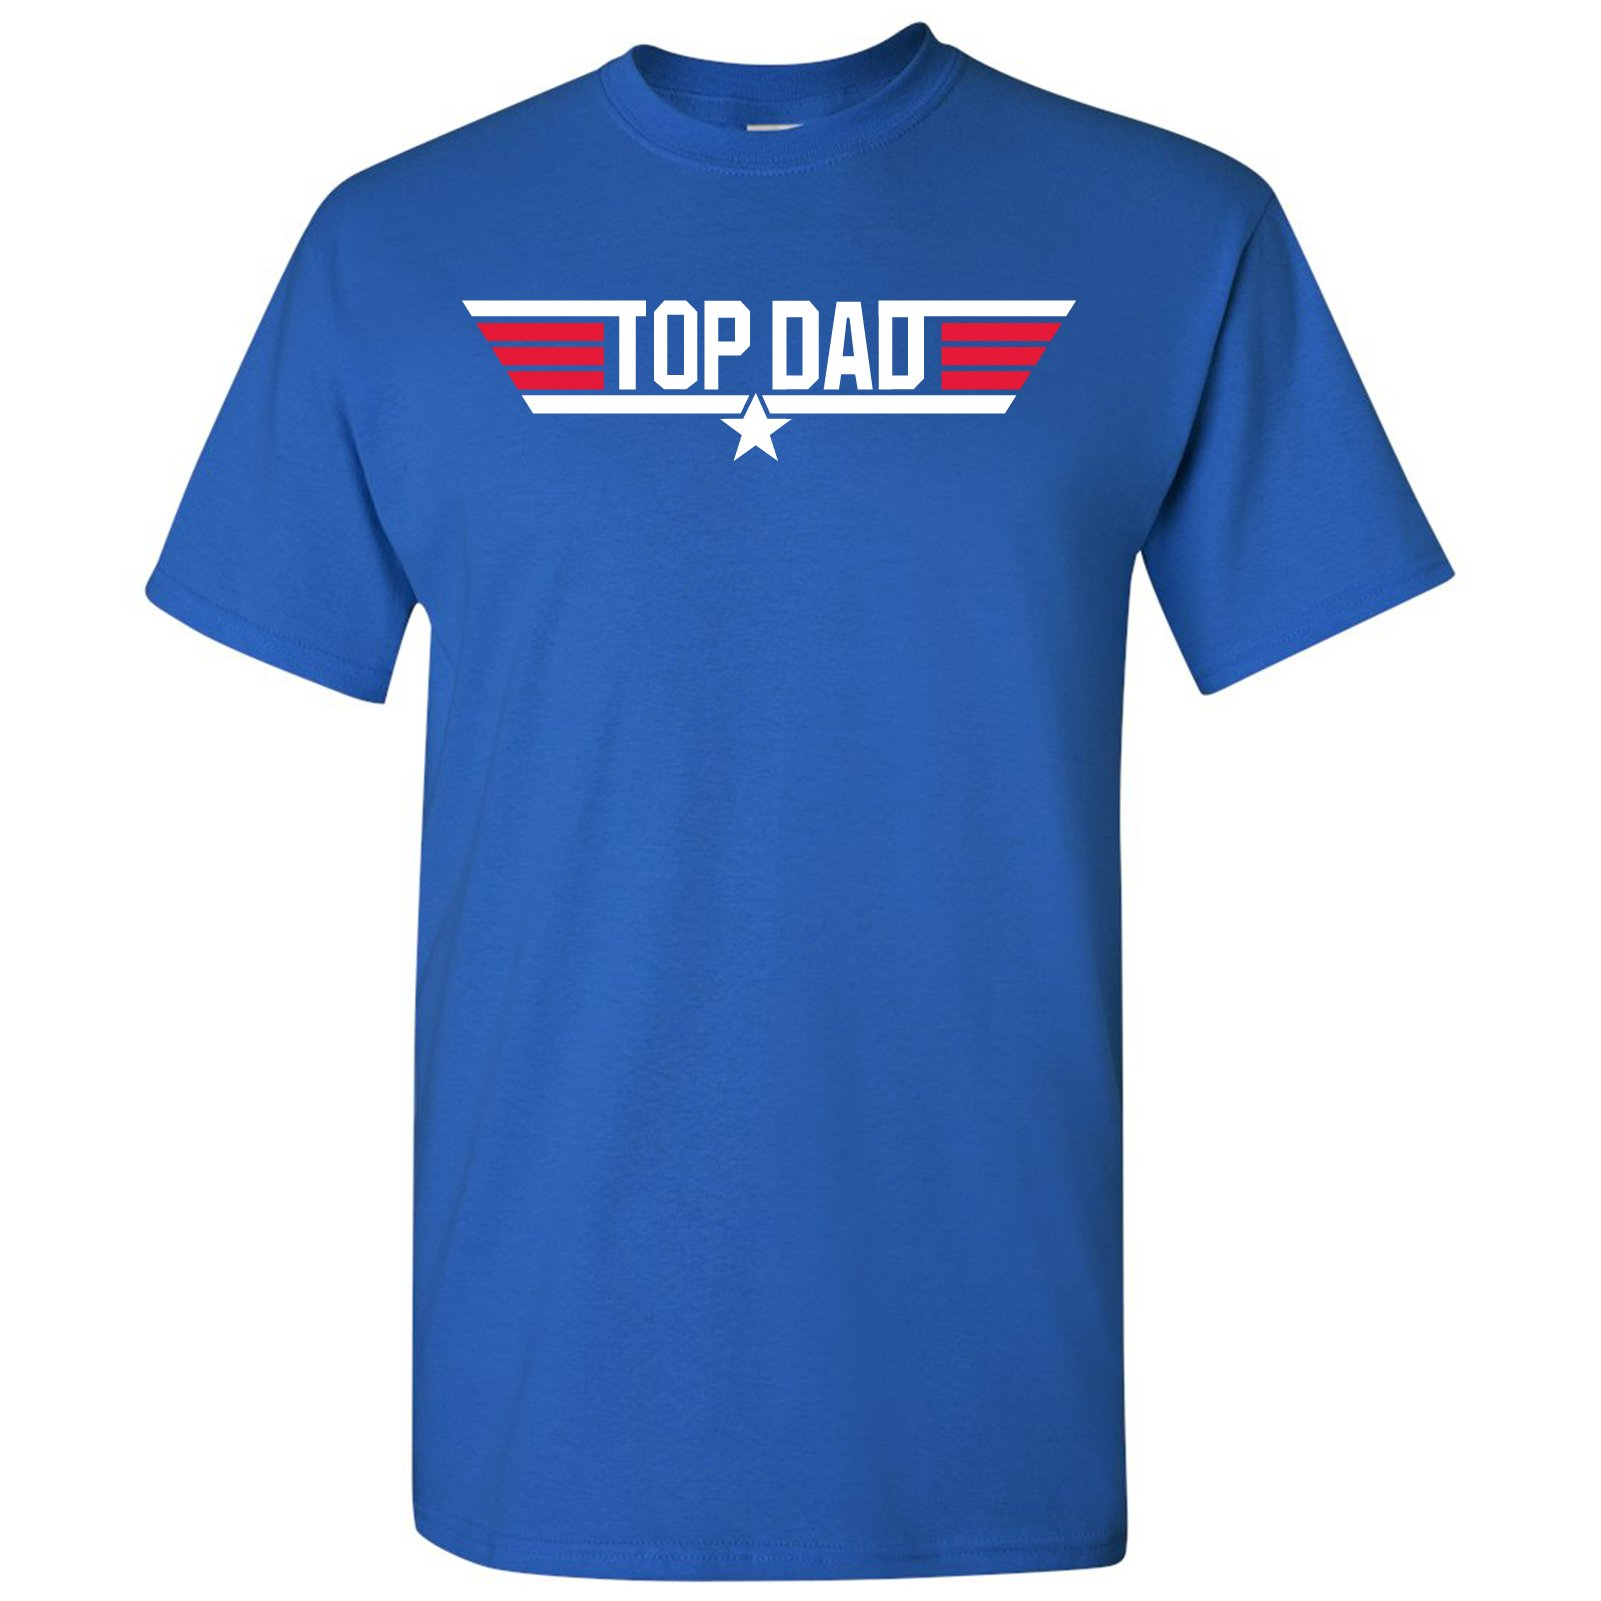 Top Dad - Father's Day, Papa, Pops, Grandfather - Adult Men's Cotton T-Shirt